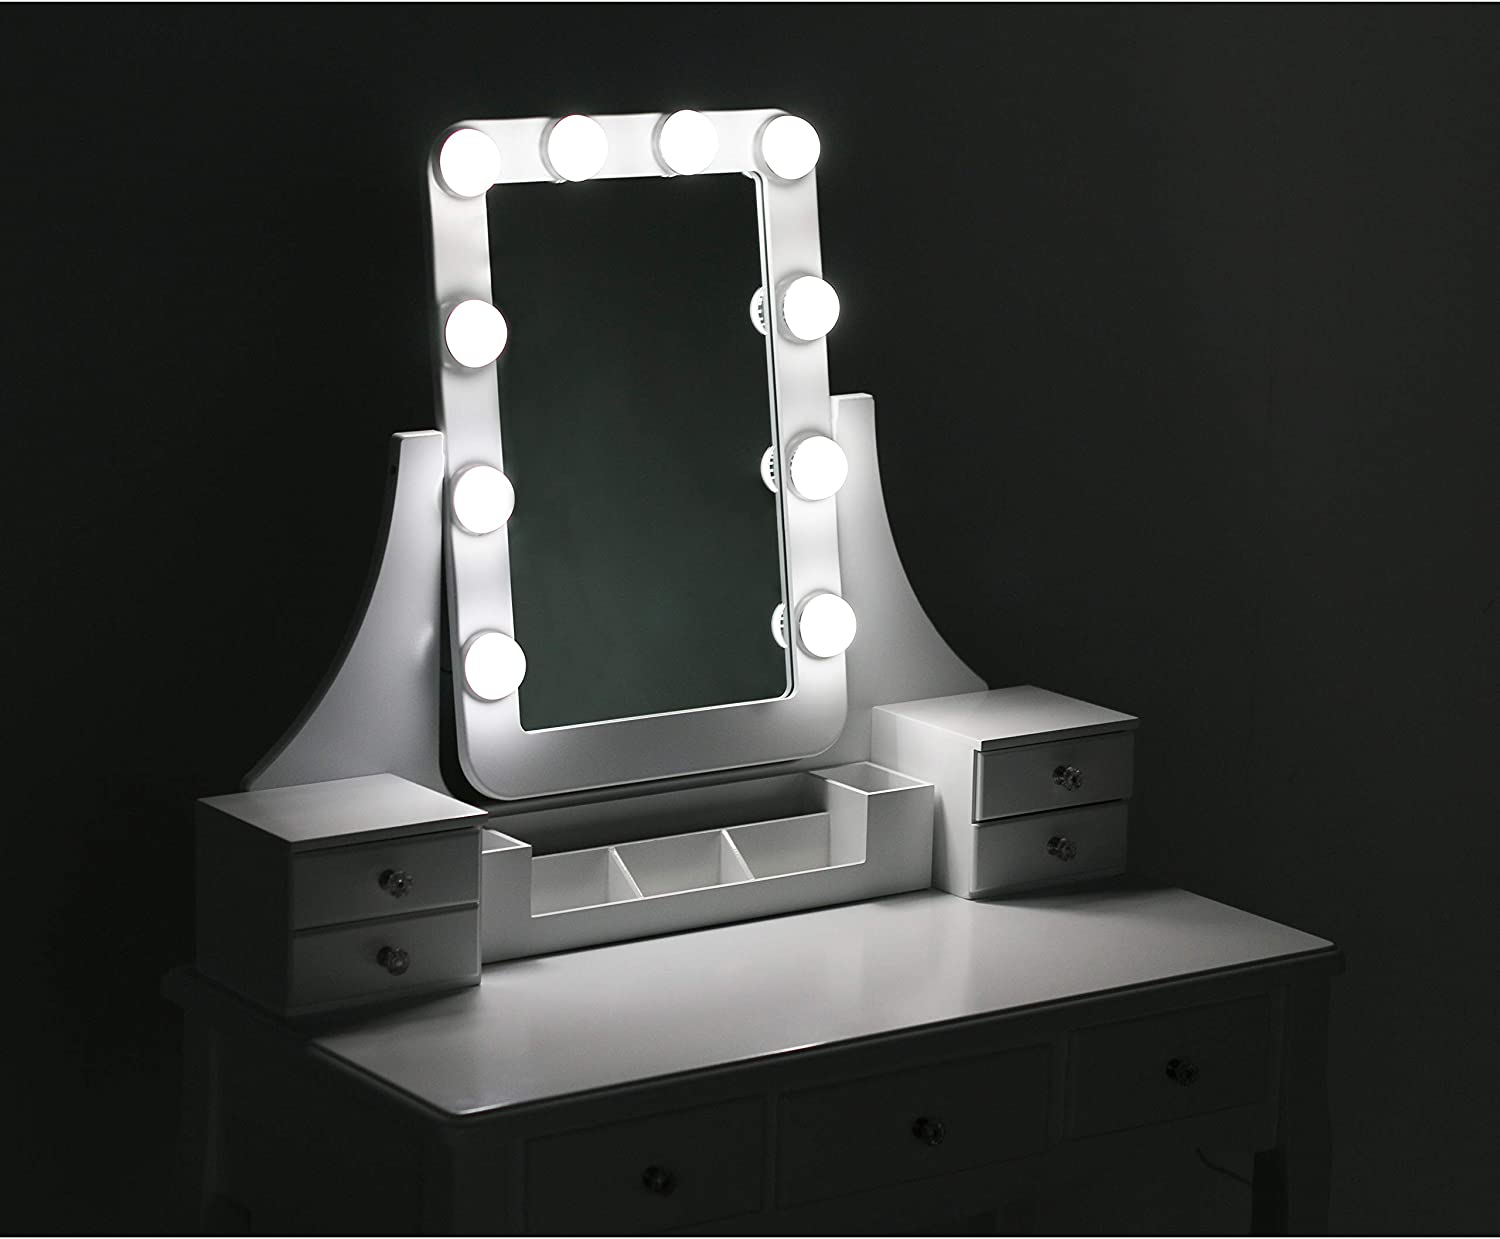 White Mupater Makeup Desk Vanity Set with Mirror Light and Bench Stool for Girls and Women Dressing Table with 7 Drawers and 10 LED Blubs